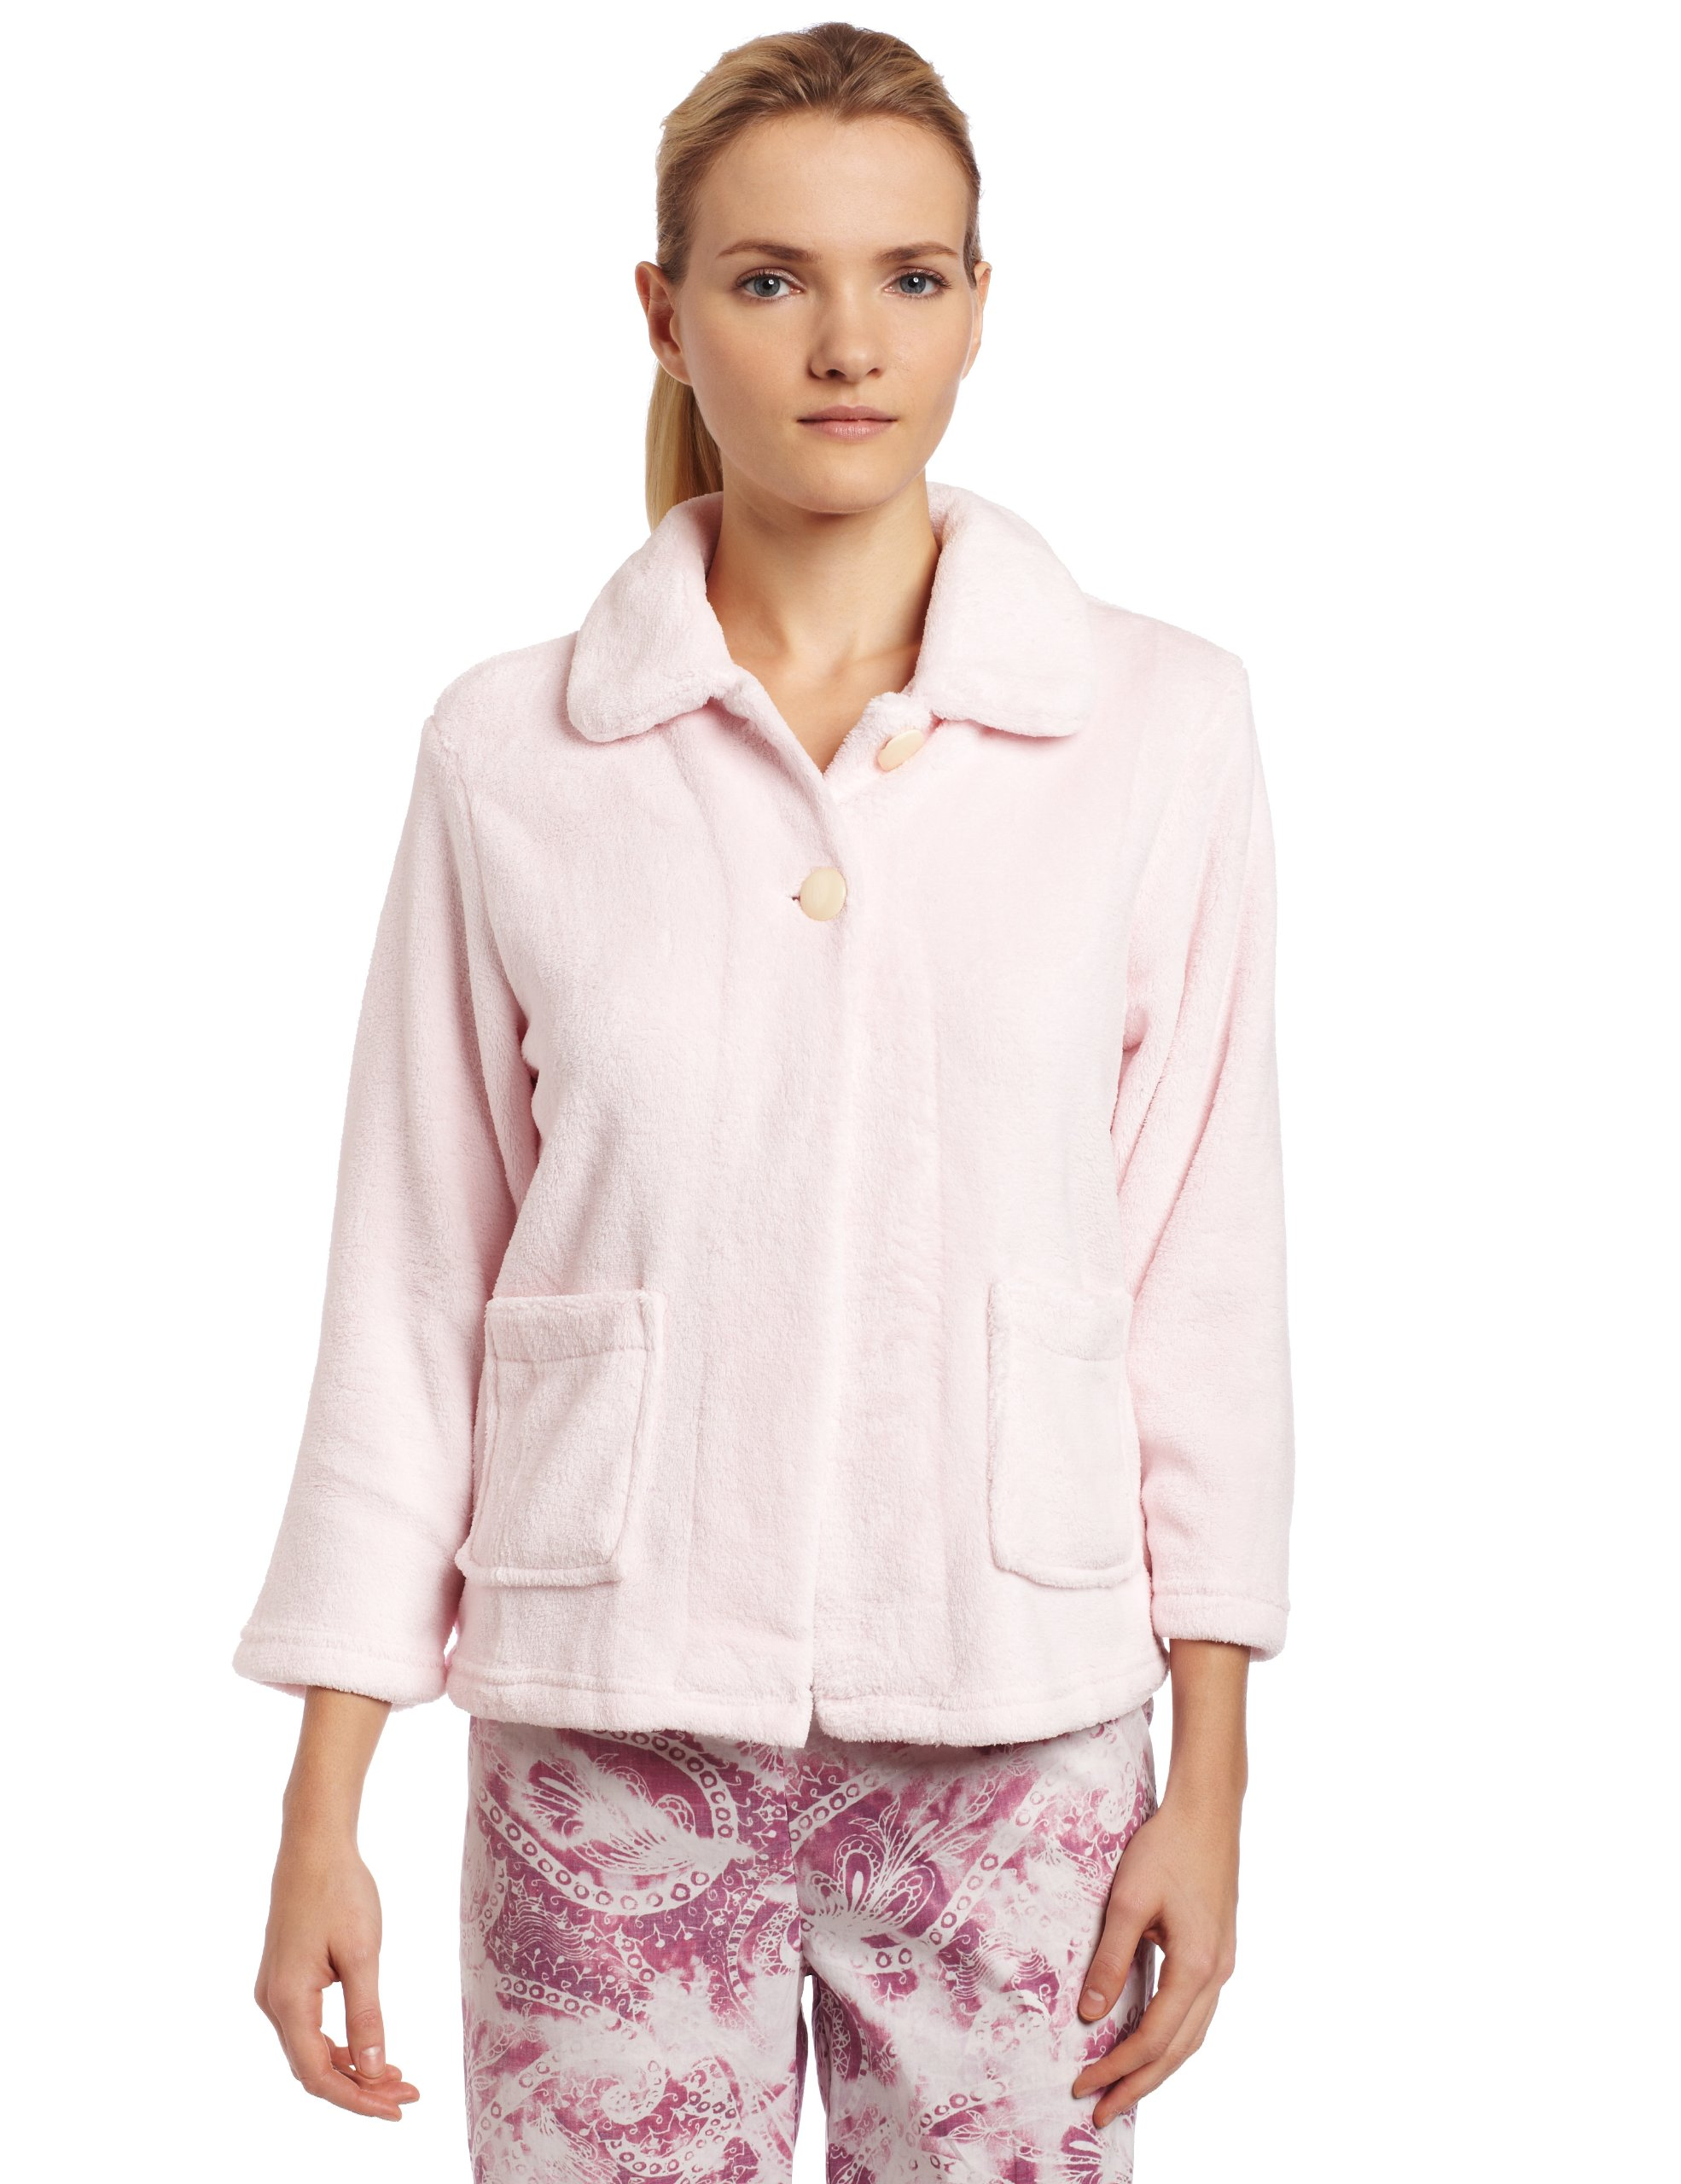 Casual Moments Womens Bed Jacket With Peter Pan Collar, Light Pink, Small by Casual Moments